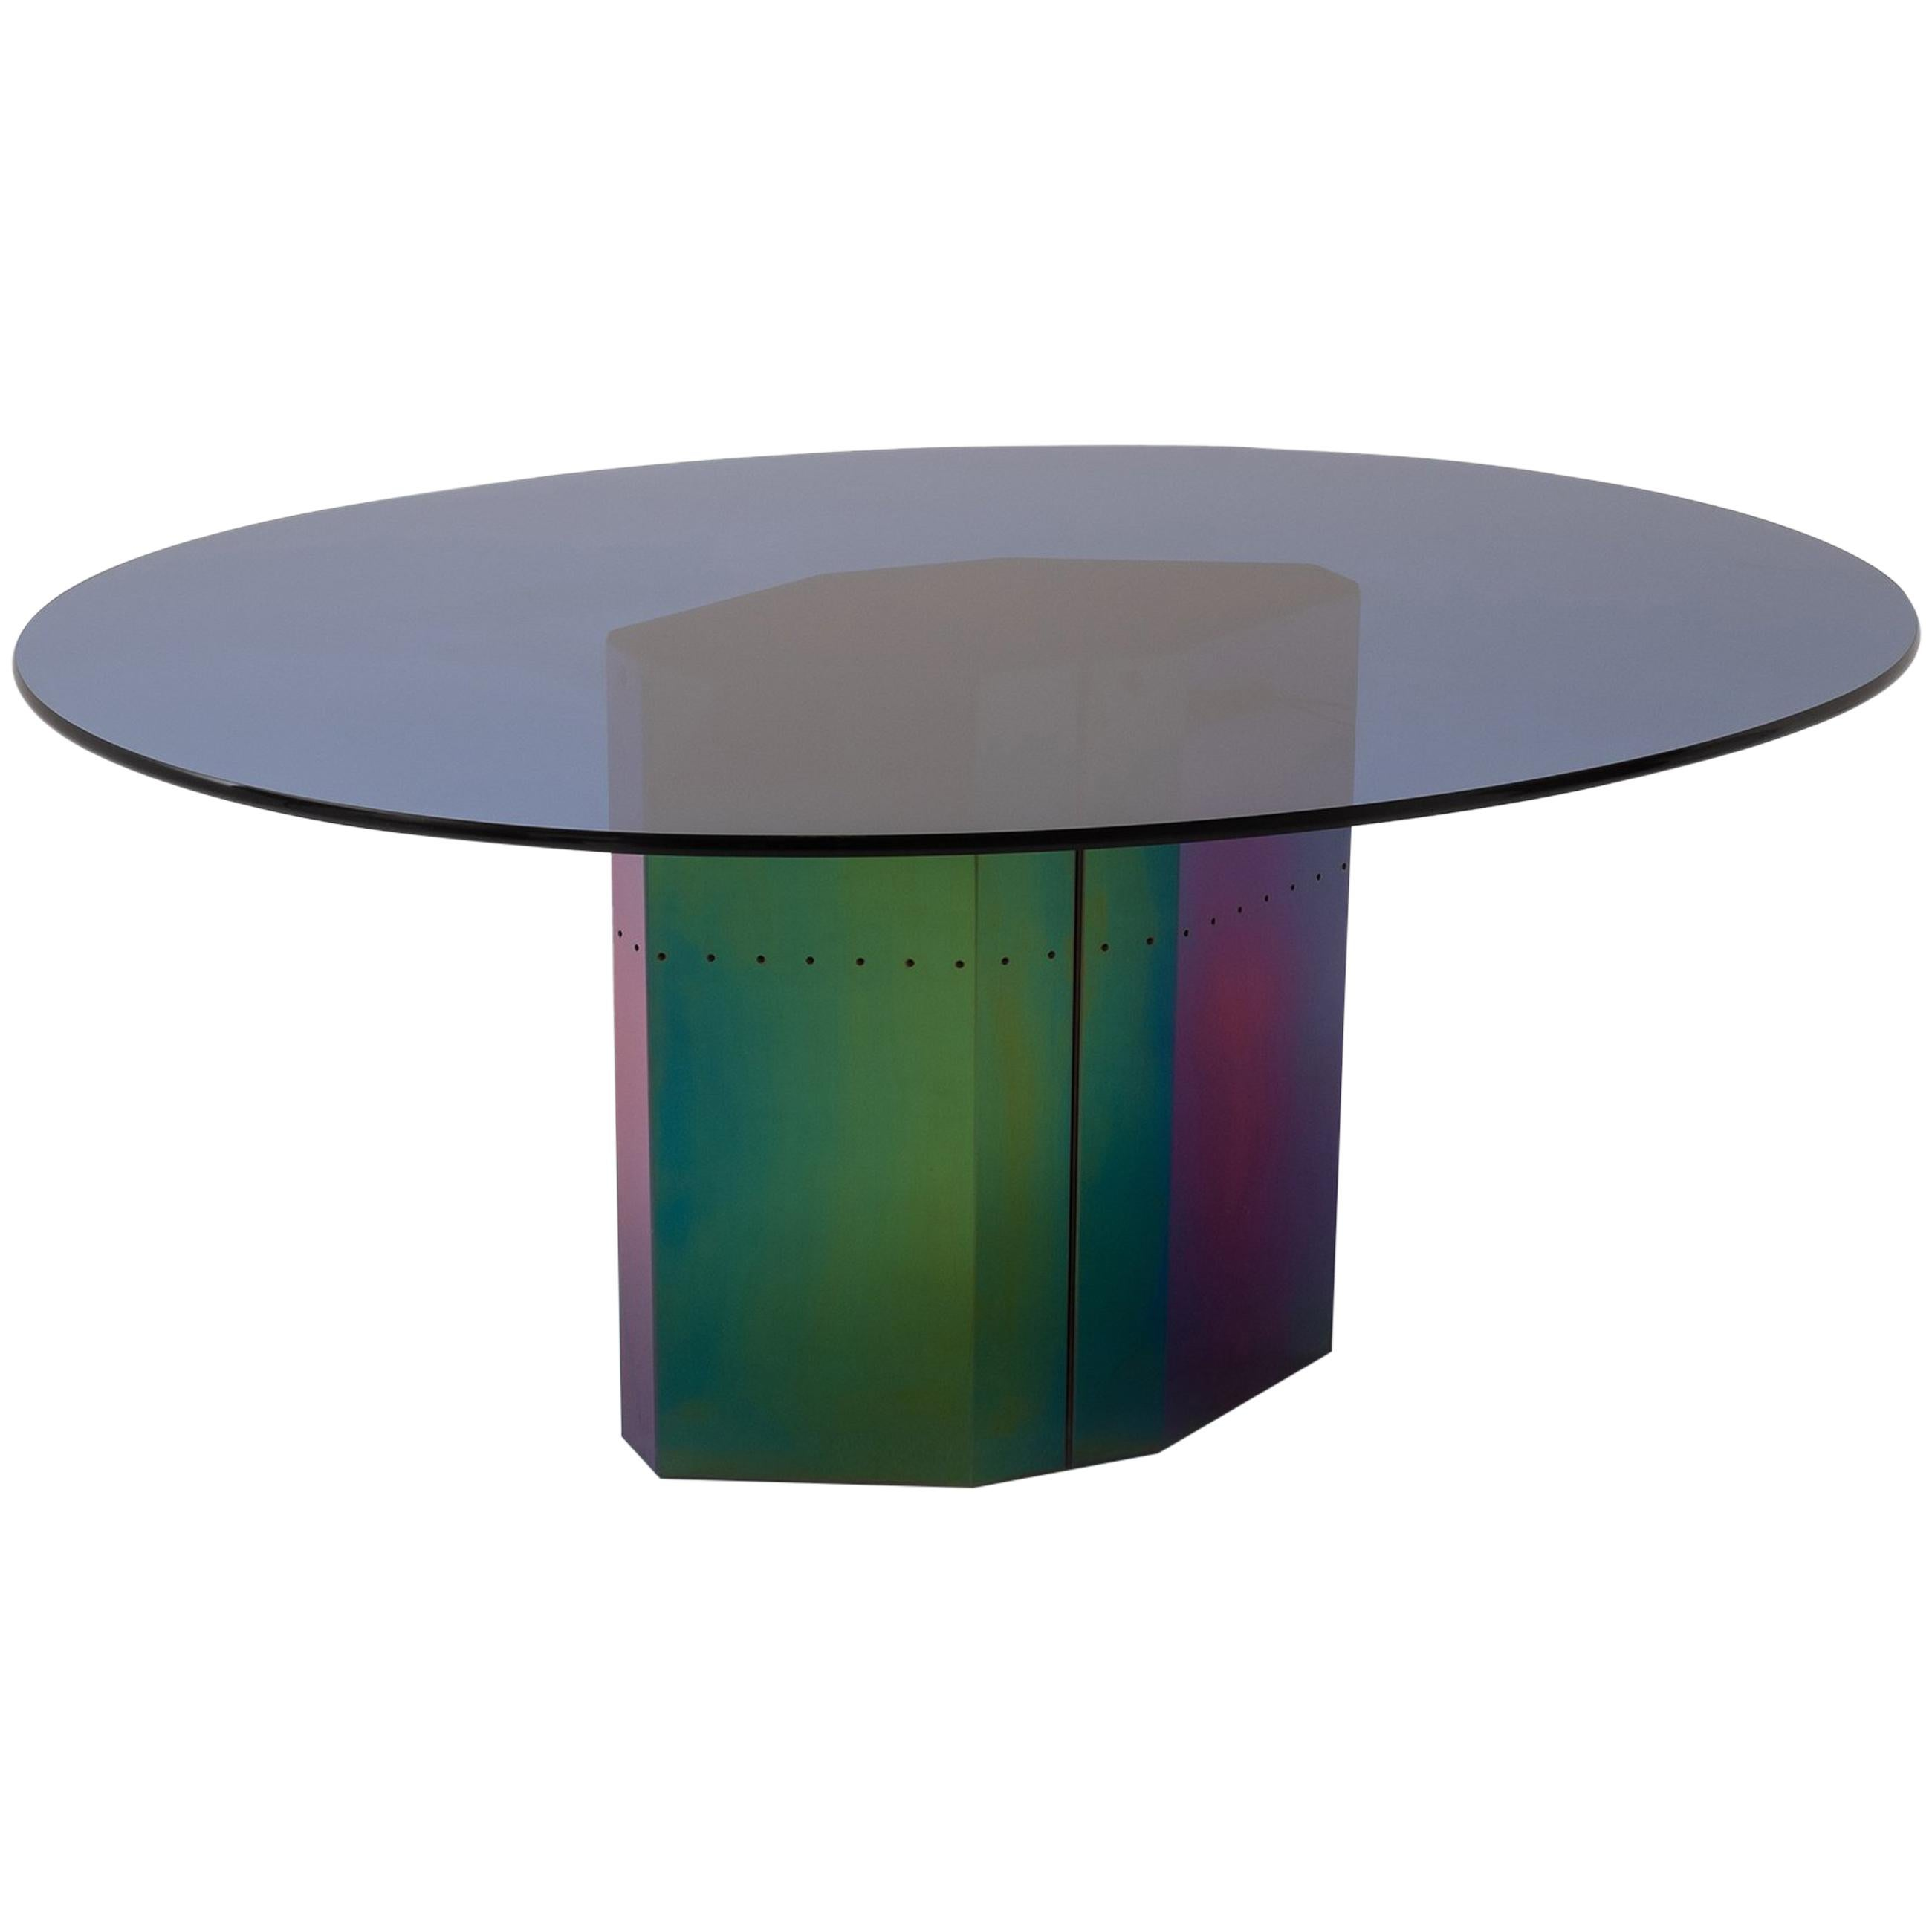 Multicolored Oval Dining Table 'Polygonon' by Afra & Tobia Scarpa for B&B Italia